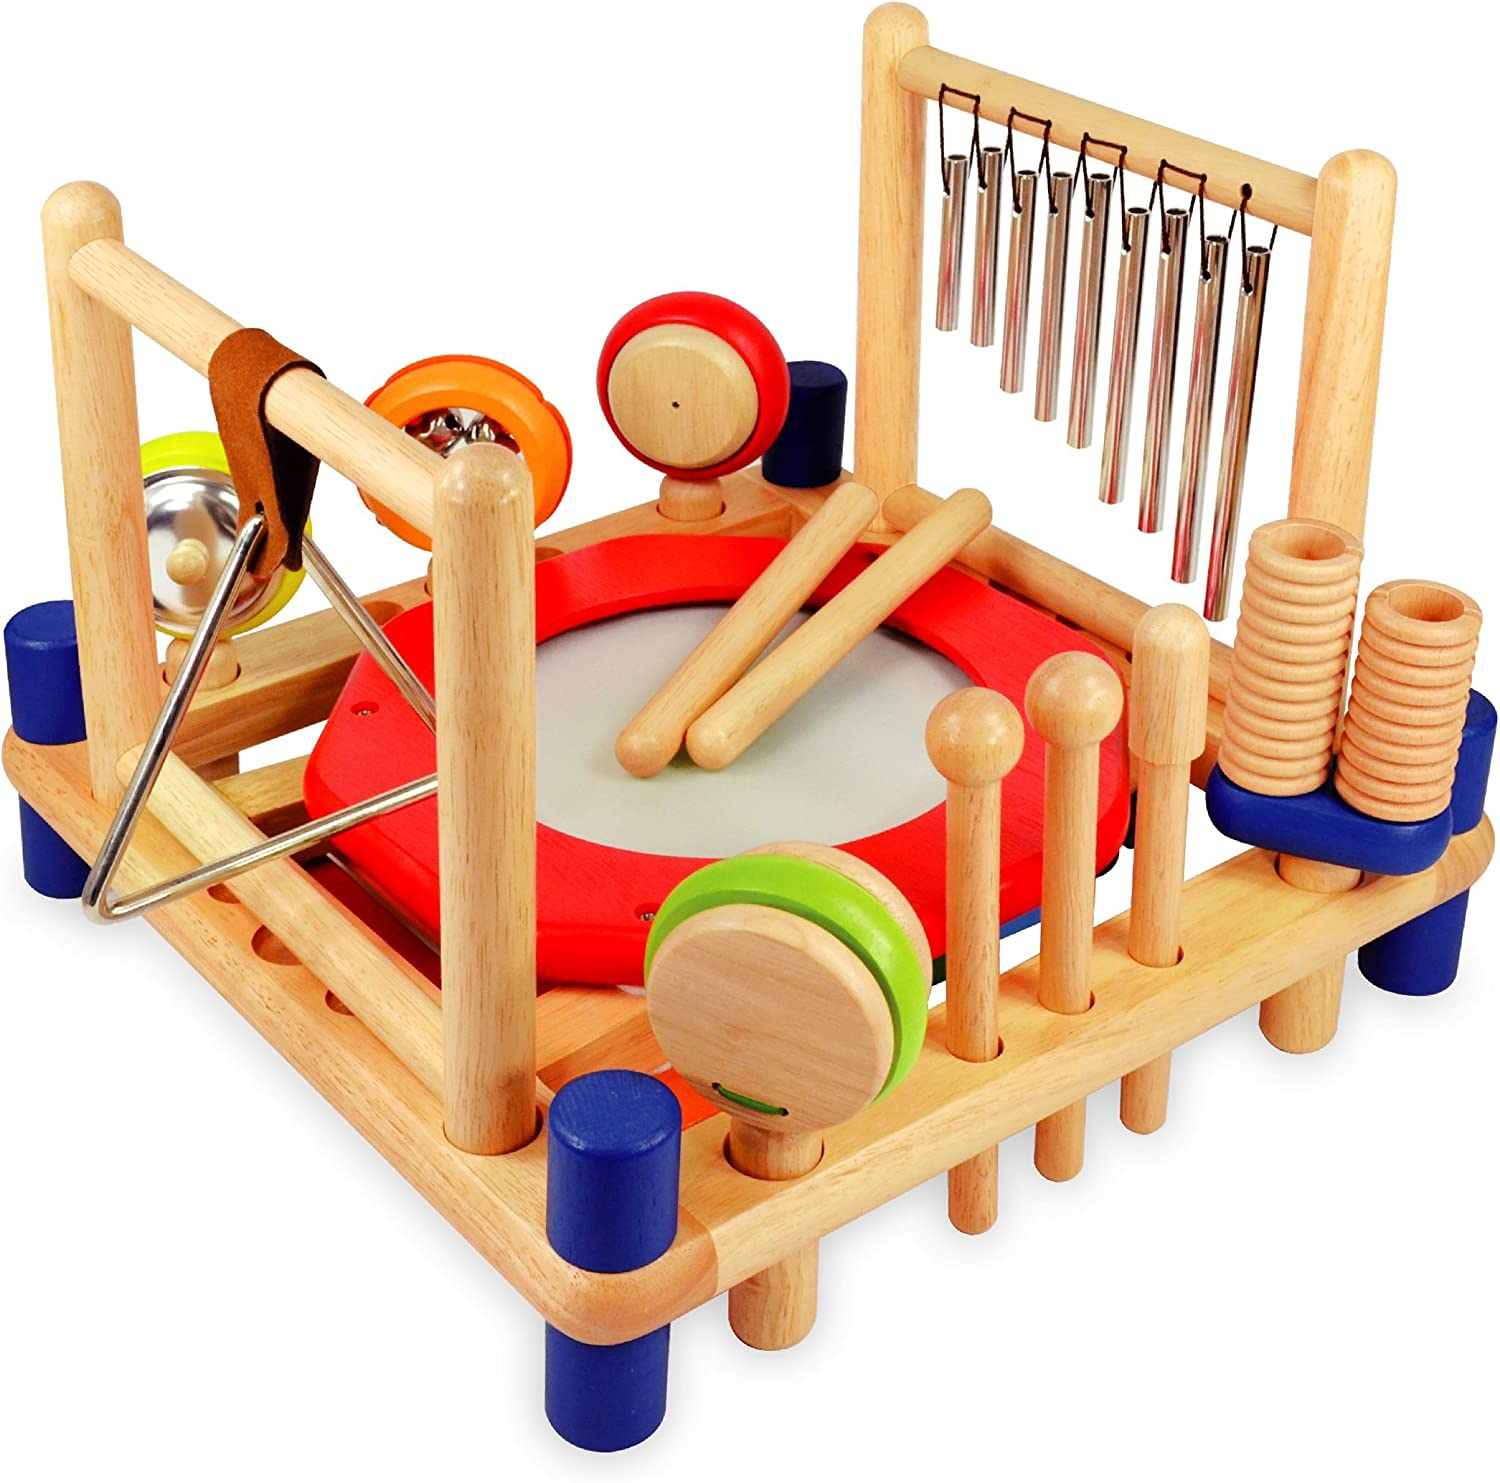 15X Wooden Kids Music Instruments Kit Children Toddlers Toys Percussion Set Bag